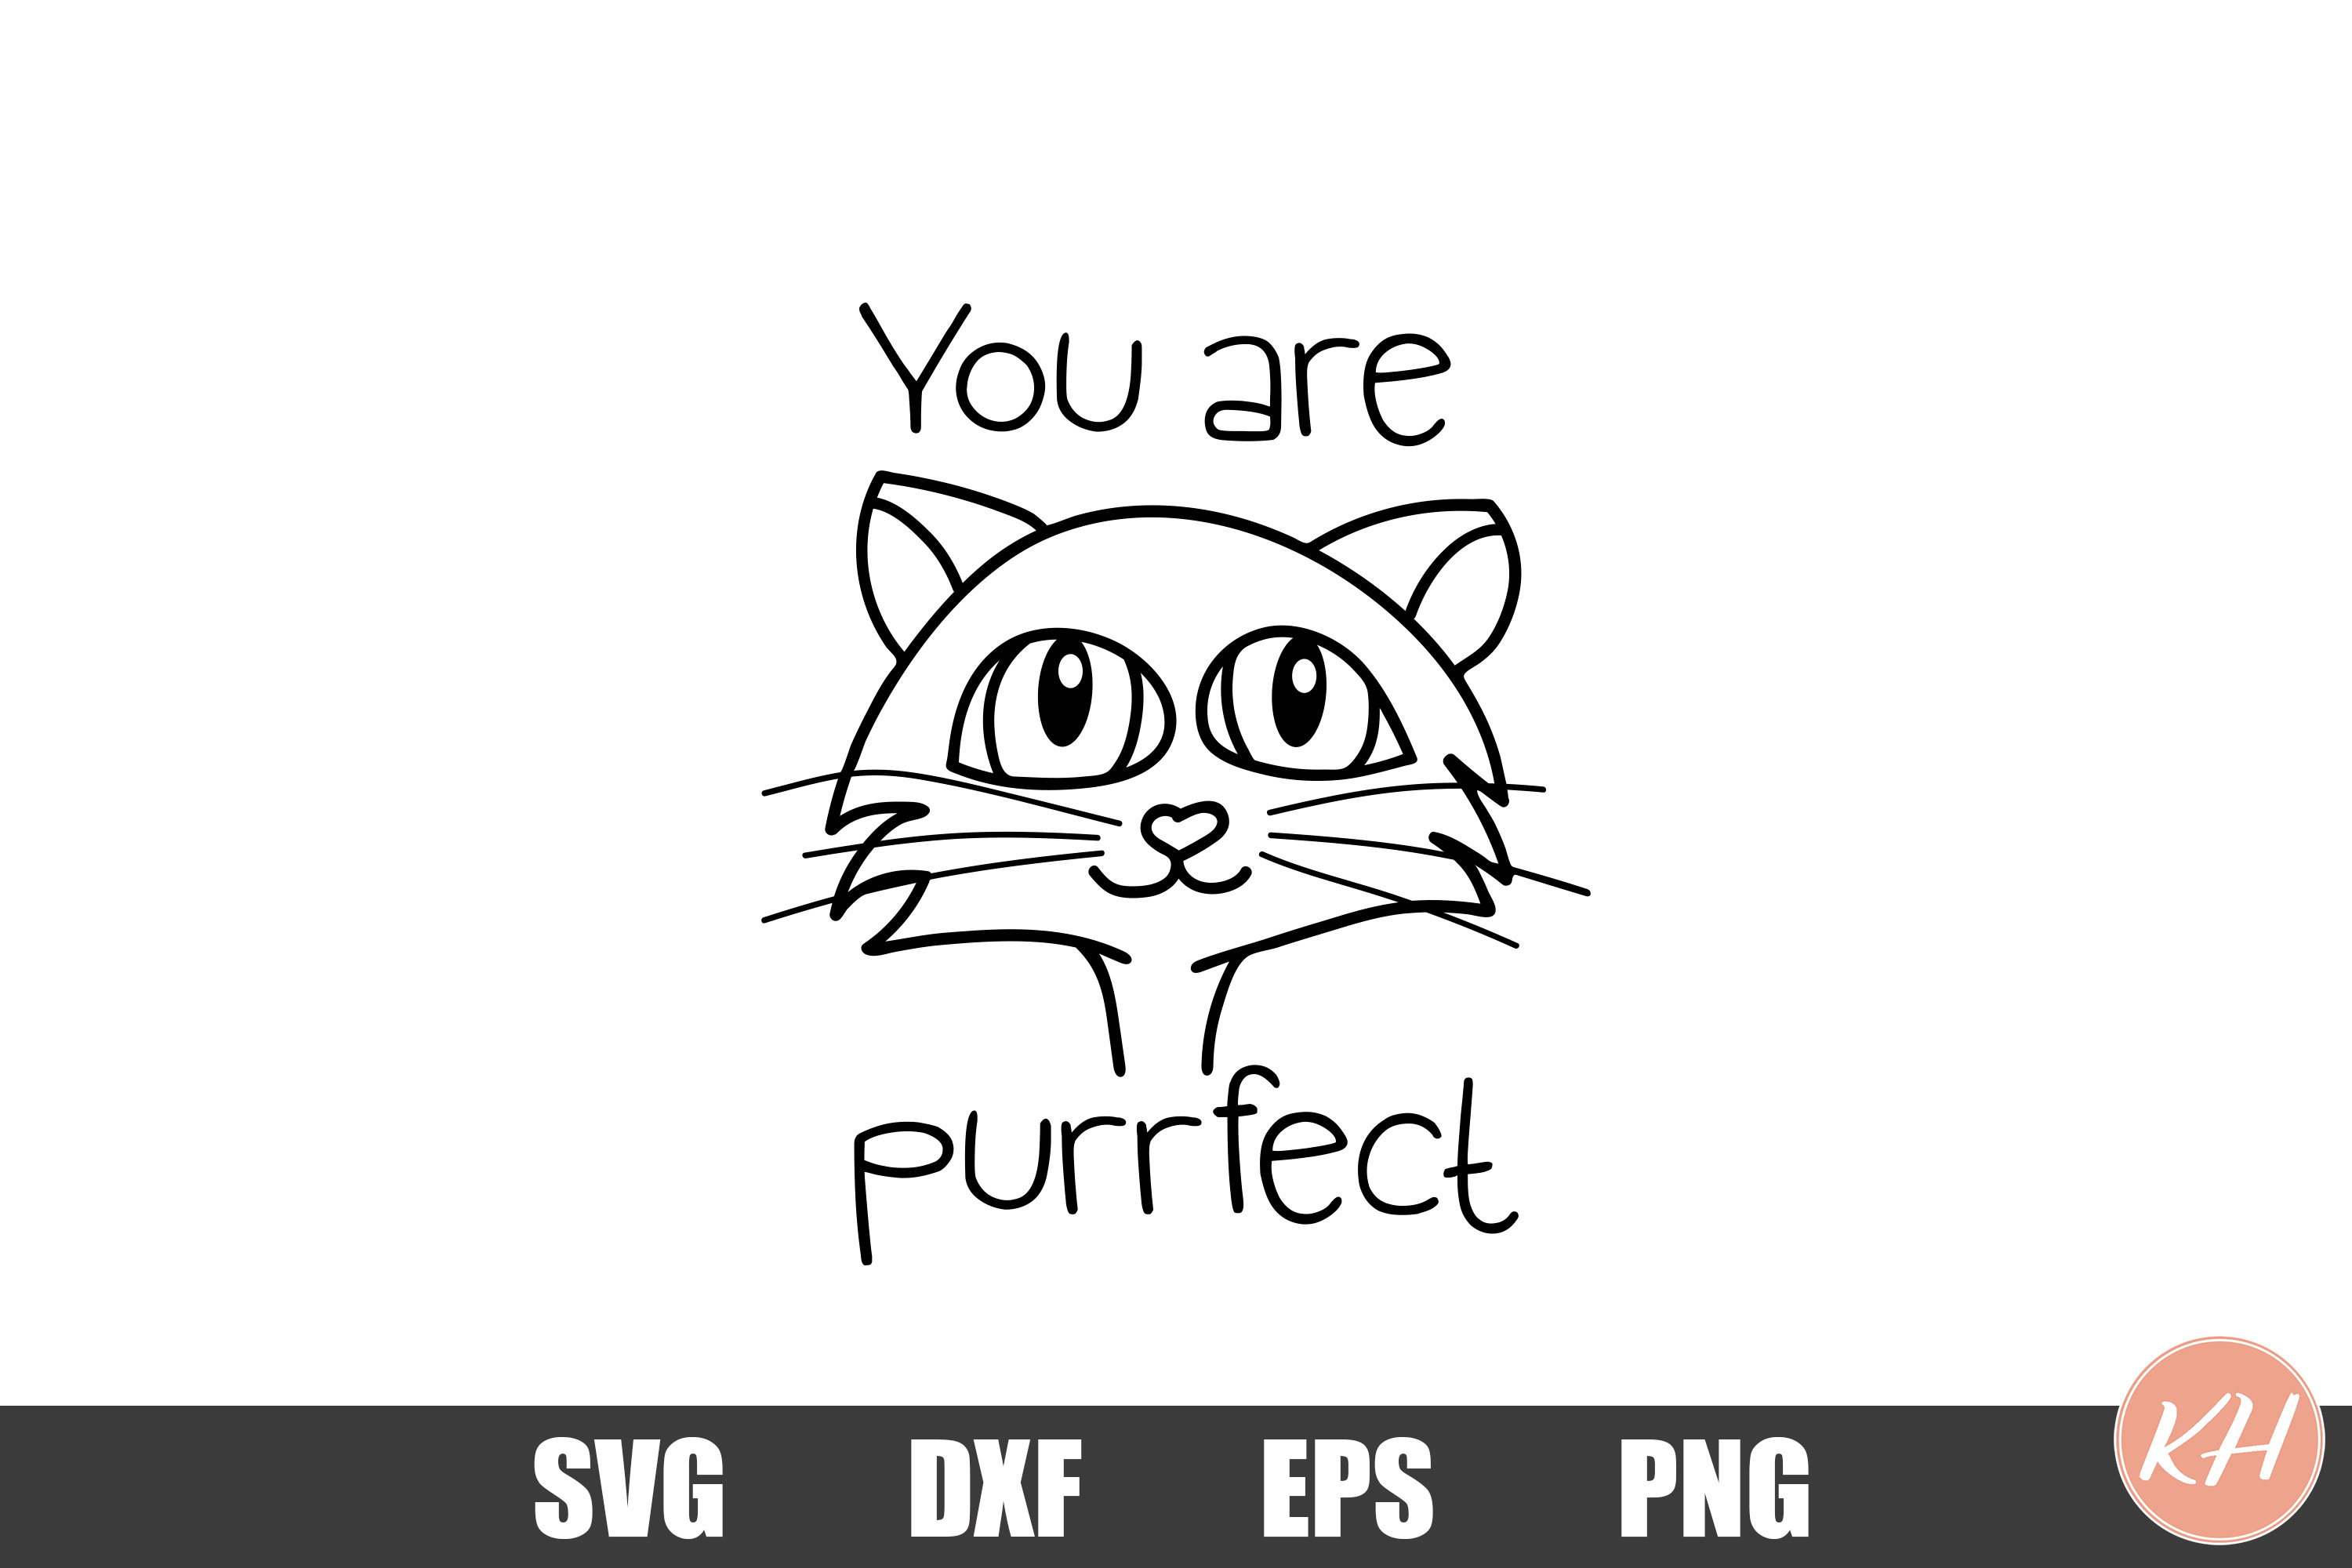 You are purrfect SVG cutting file example image 1